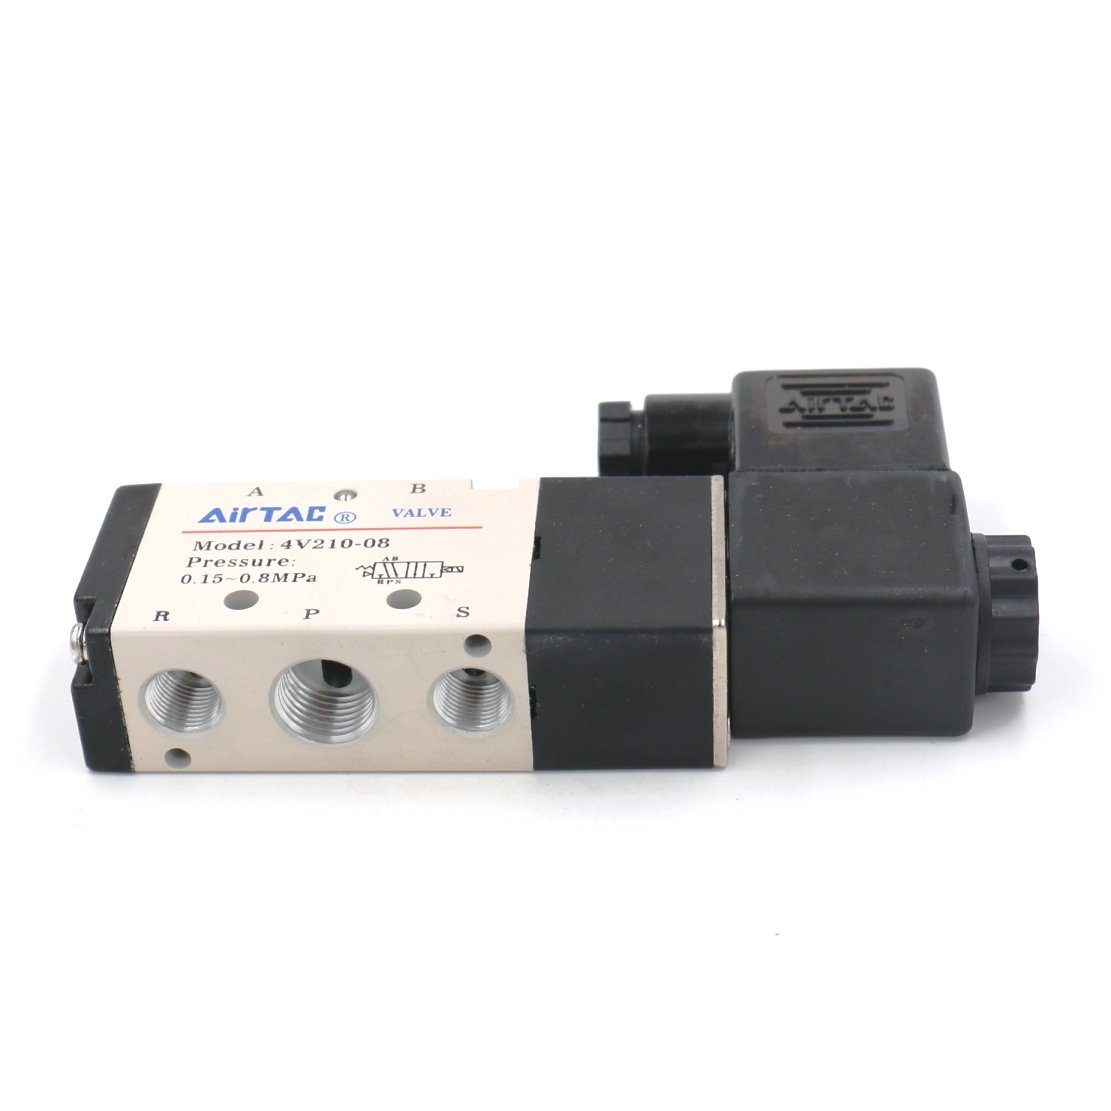 Baomain Pneumatic Air Control Solenoid Valve 4V210-08 DC24V 5 Way 2 Position PT1/4'' Internally Piloted Acting Type Single Electrical Control by Baomain (Image #2)